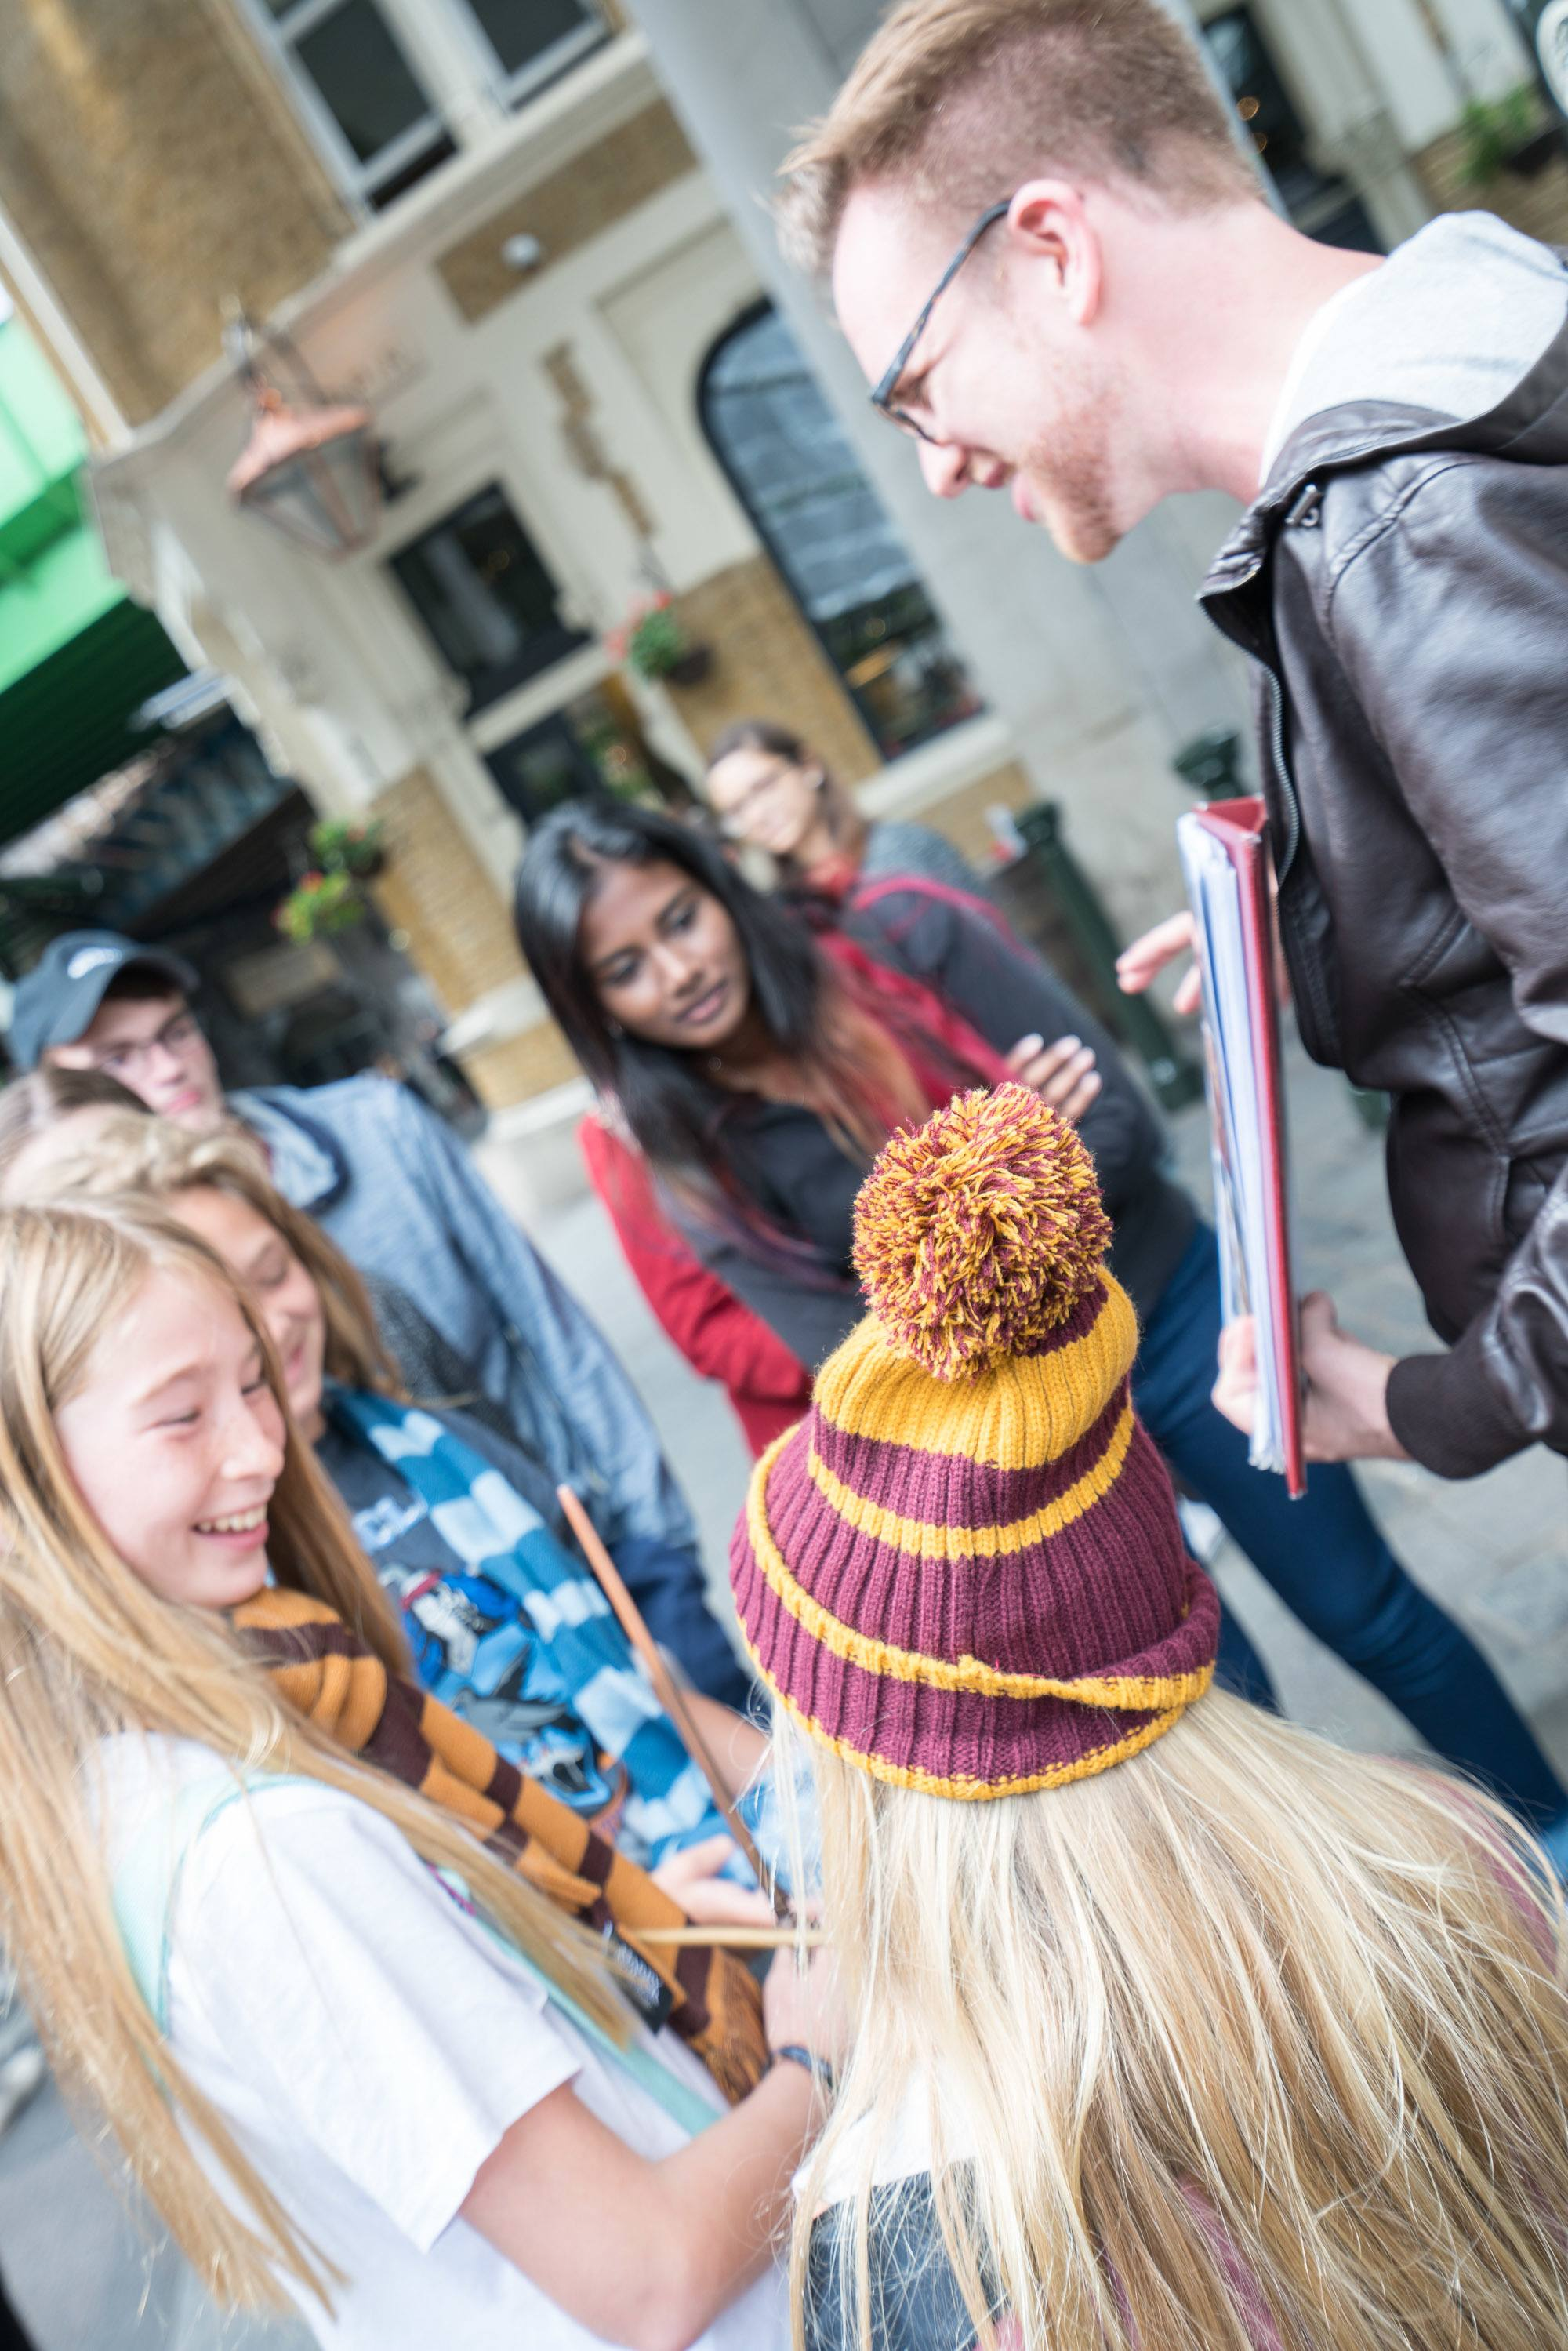 Every Harry Potter fan should take a Tours for Muggles walking tour in London.